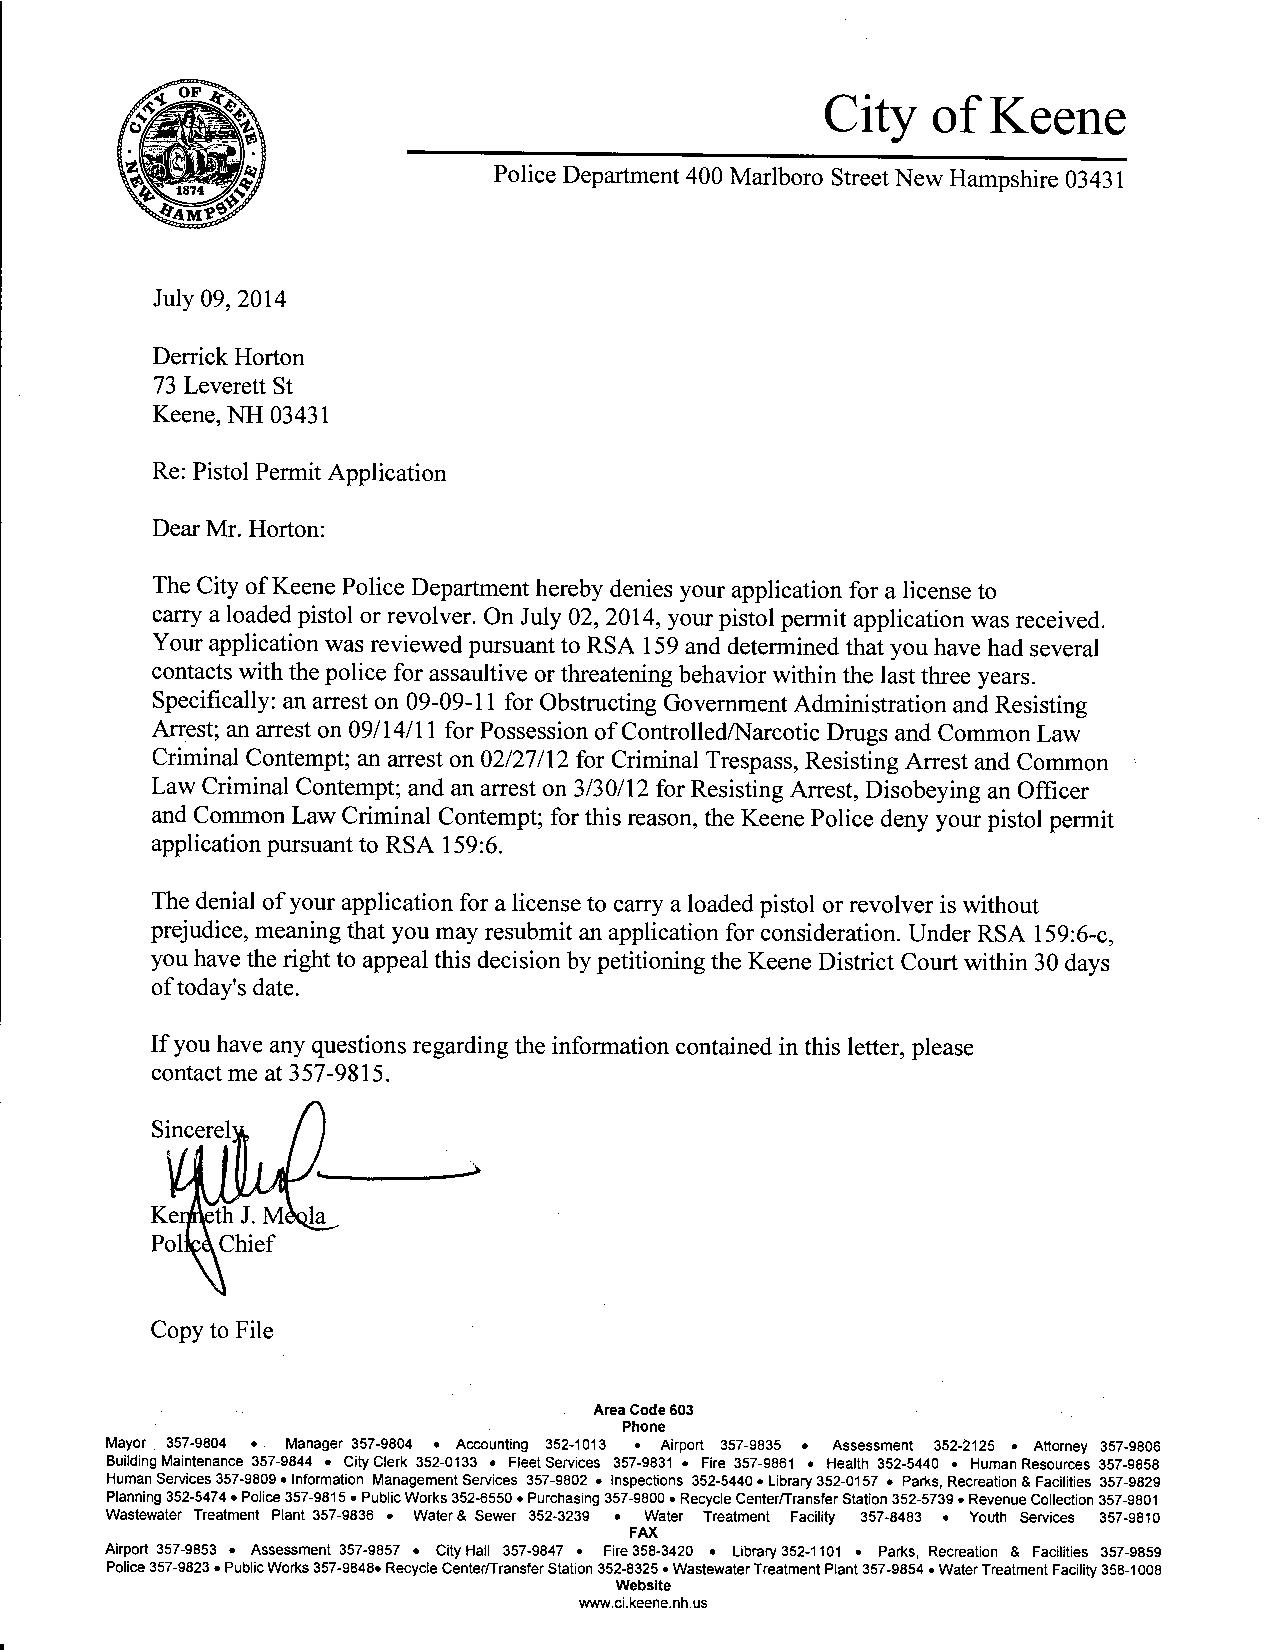 Sample Letter To Chief Of Police For Gun License